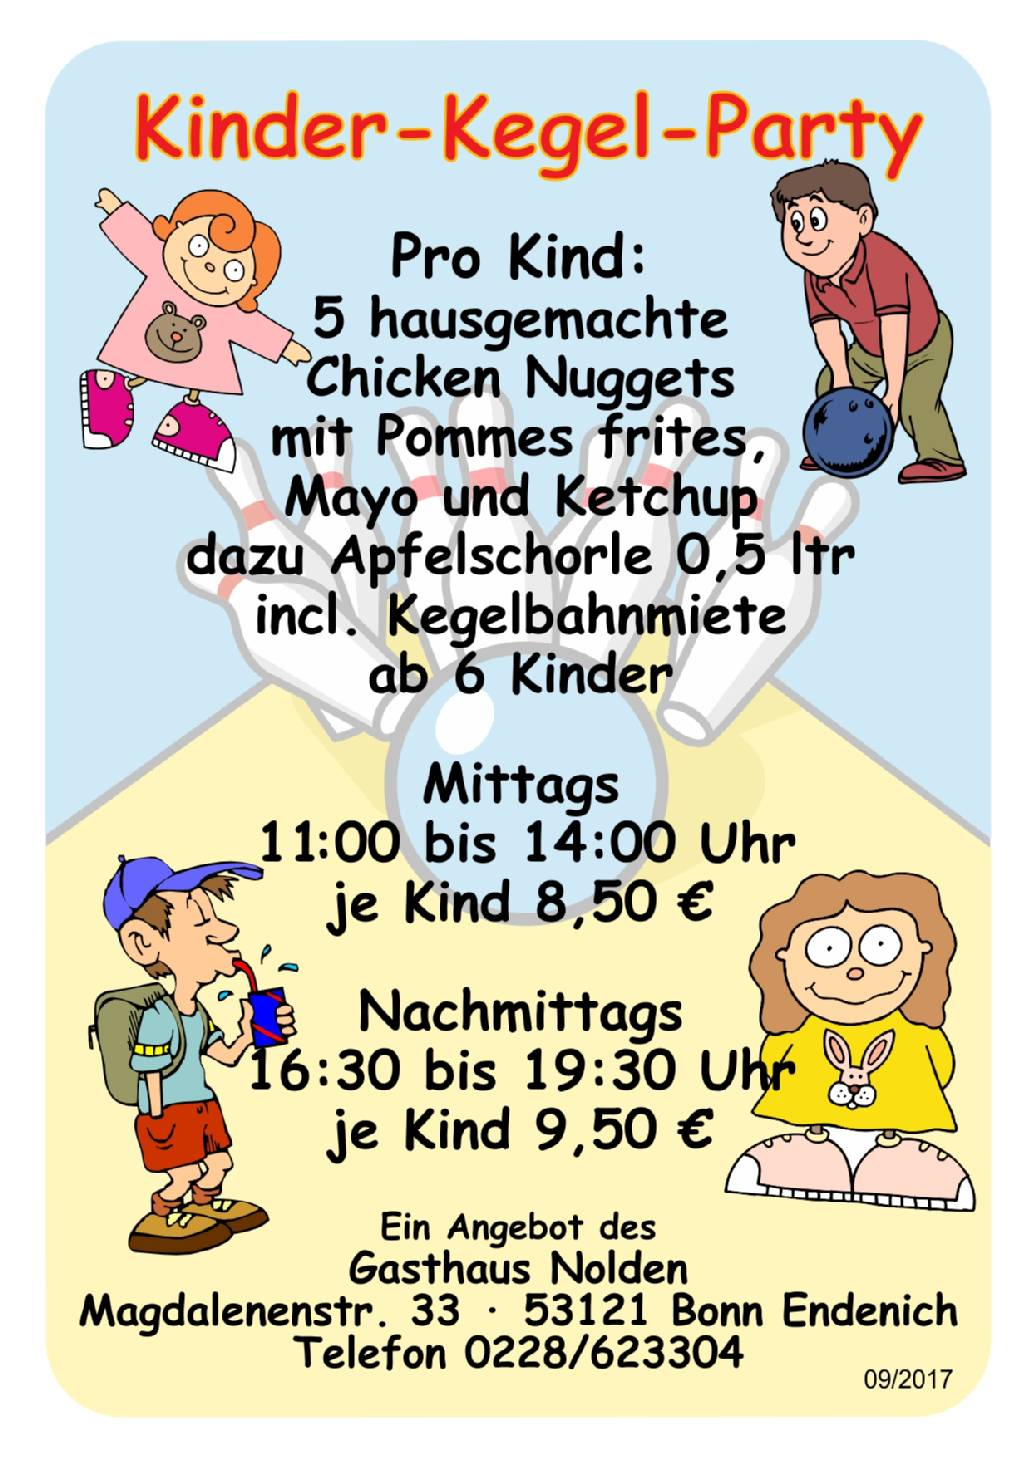 Kinder-Kegel-Party